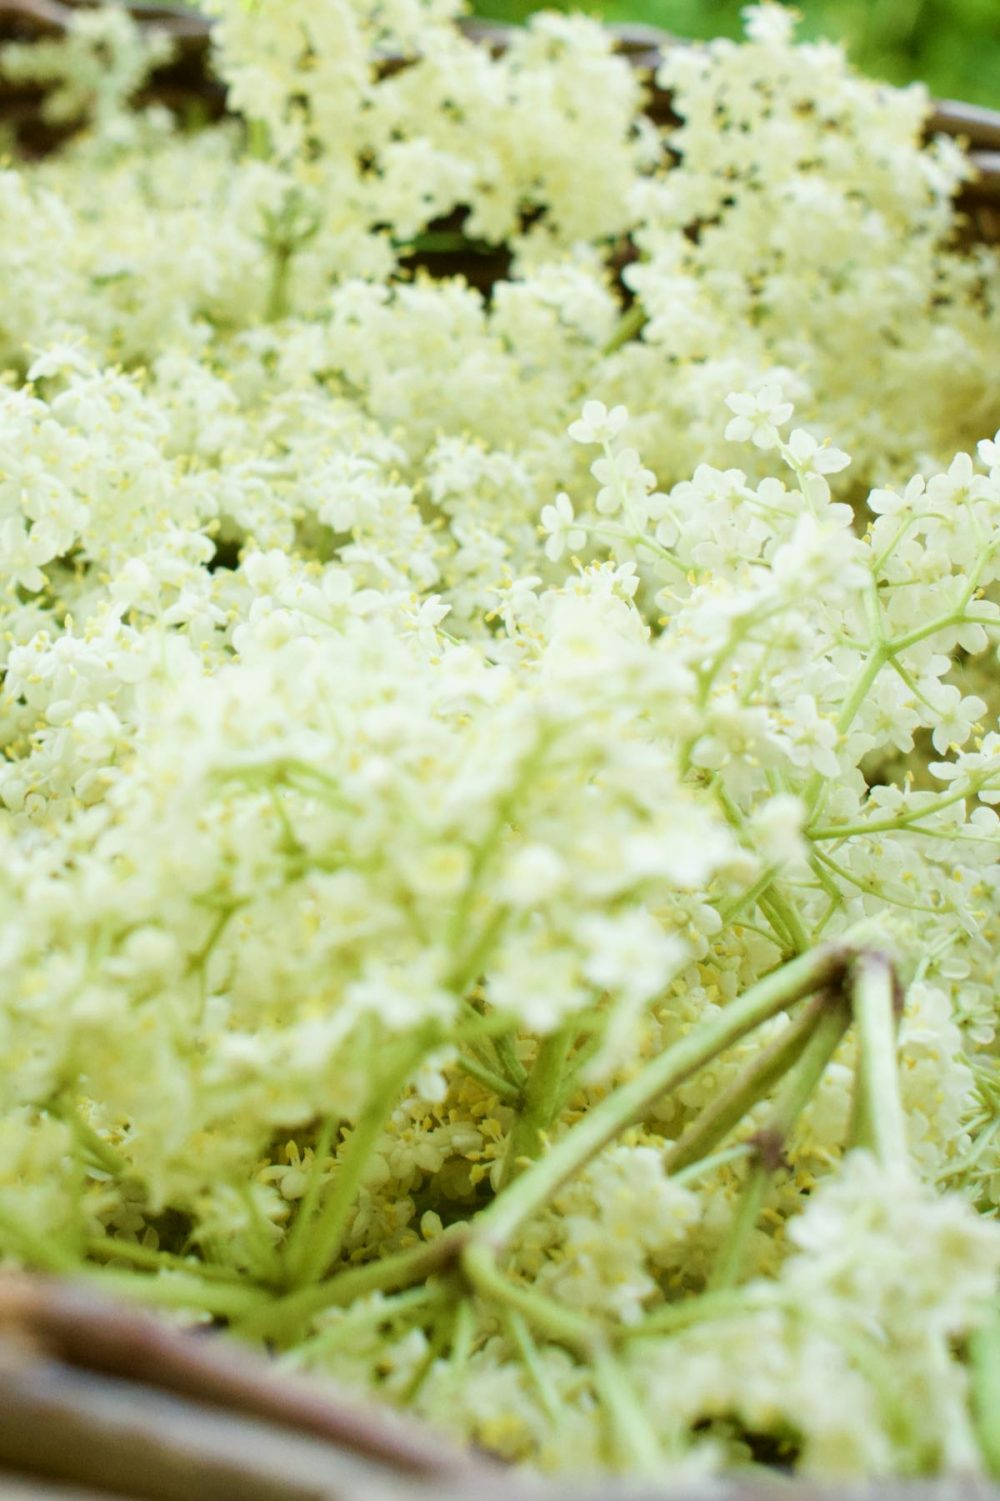 A cloud of white elderflowers collected in a basket